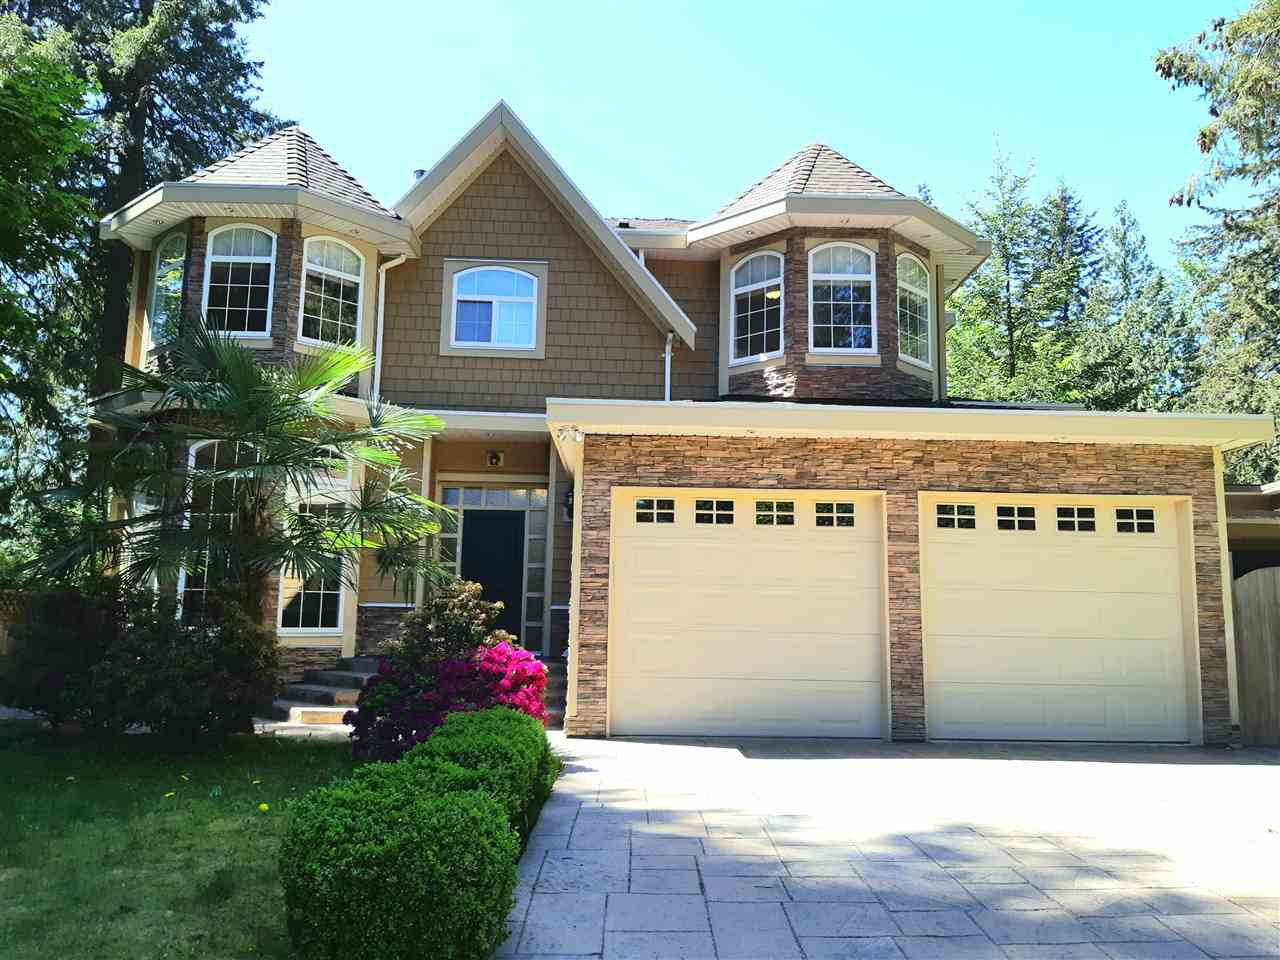 Main Photo: 2281 W KEITH Road in North Vancouver: Pemberton Heights House for sale : MLS®# R2366115